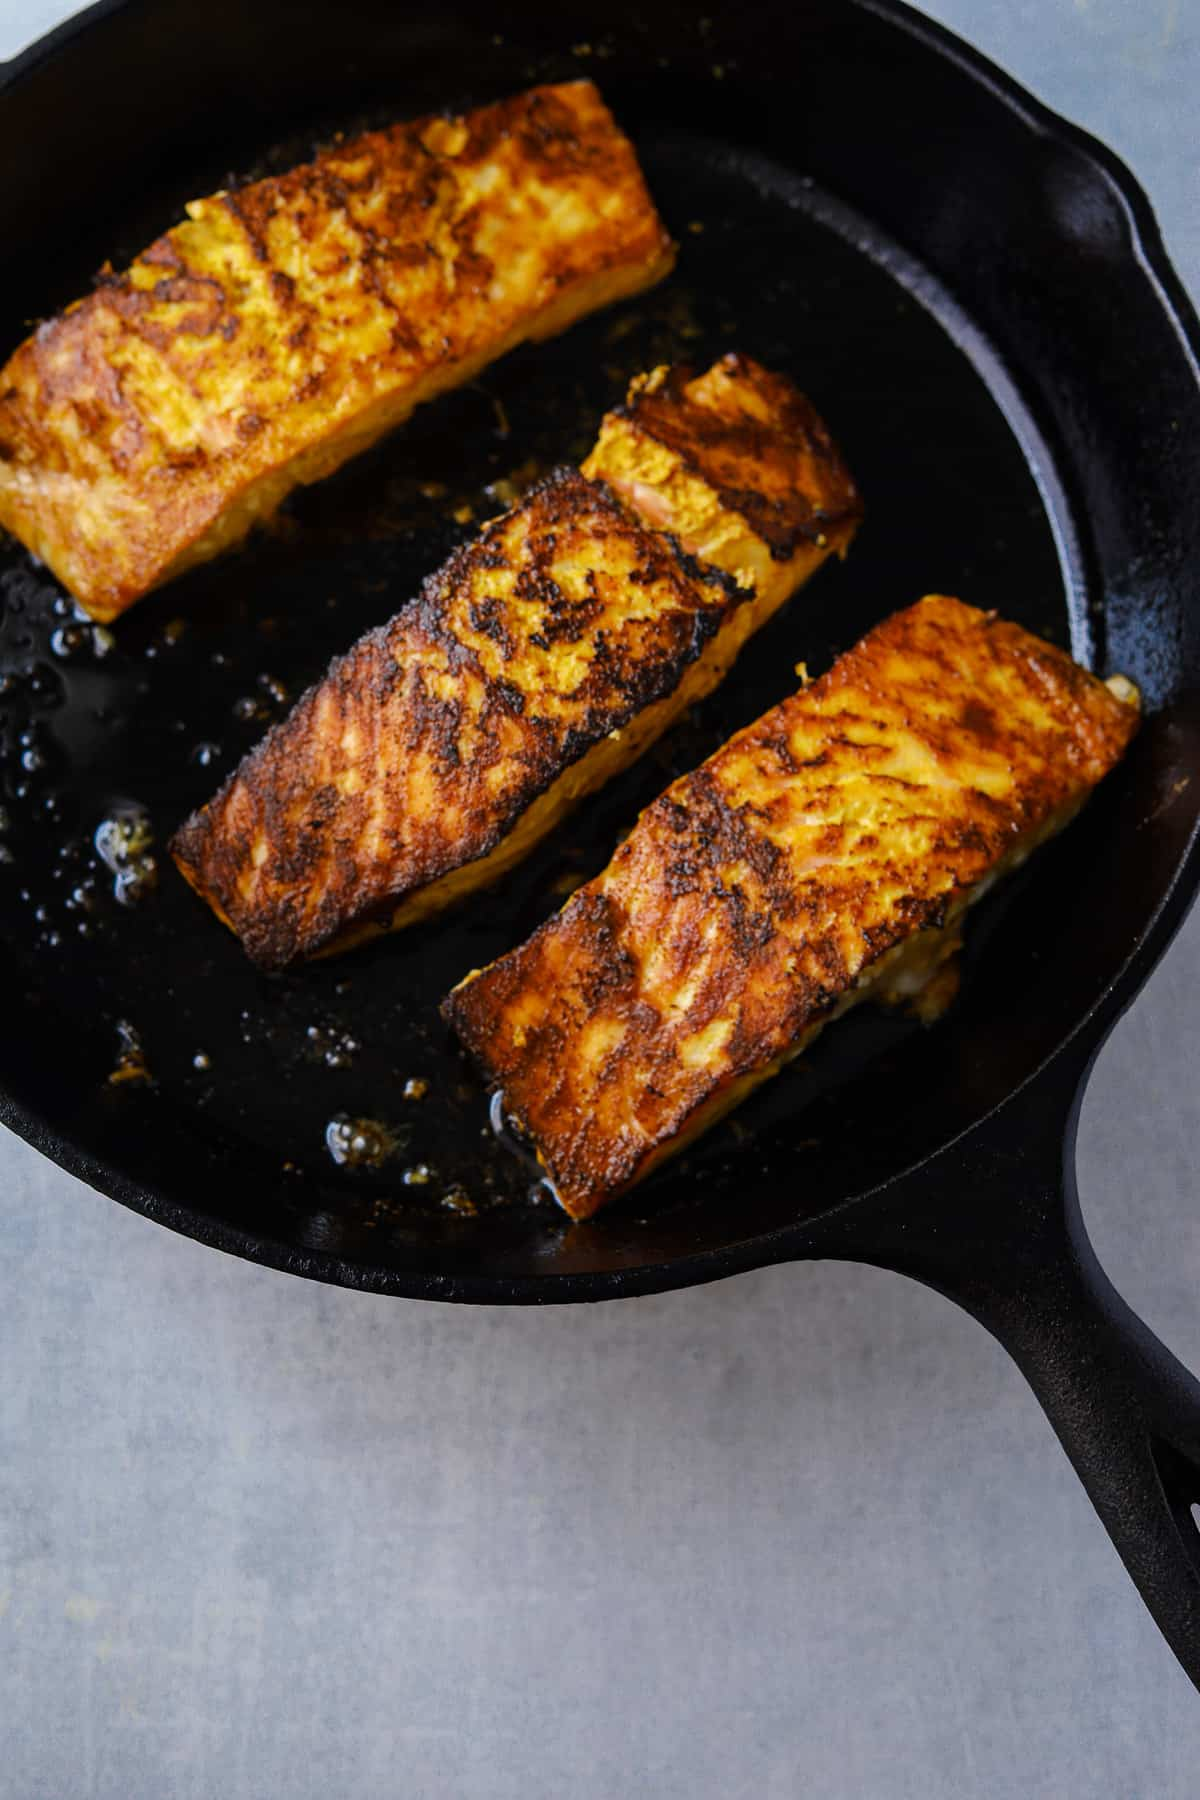 three filets of salmon searing in a cast iron pan